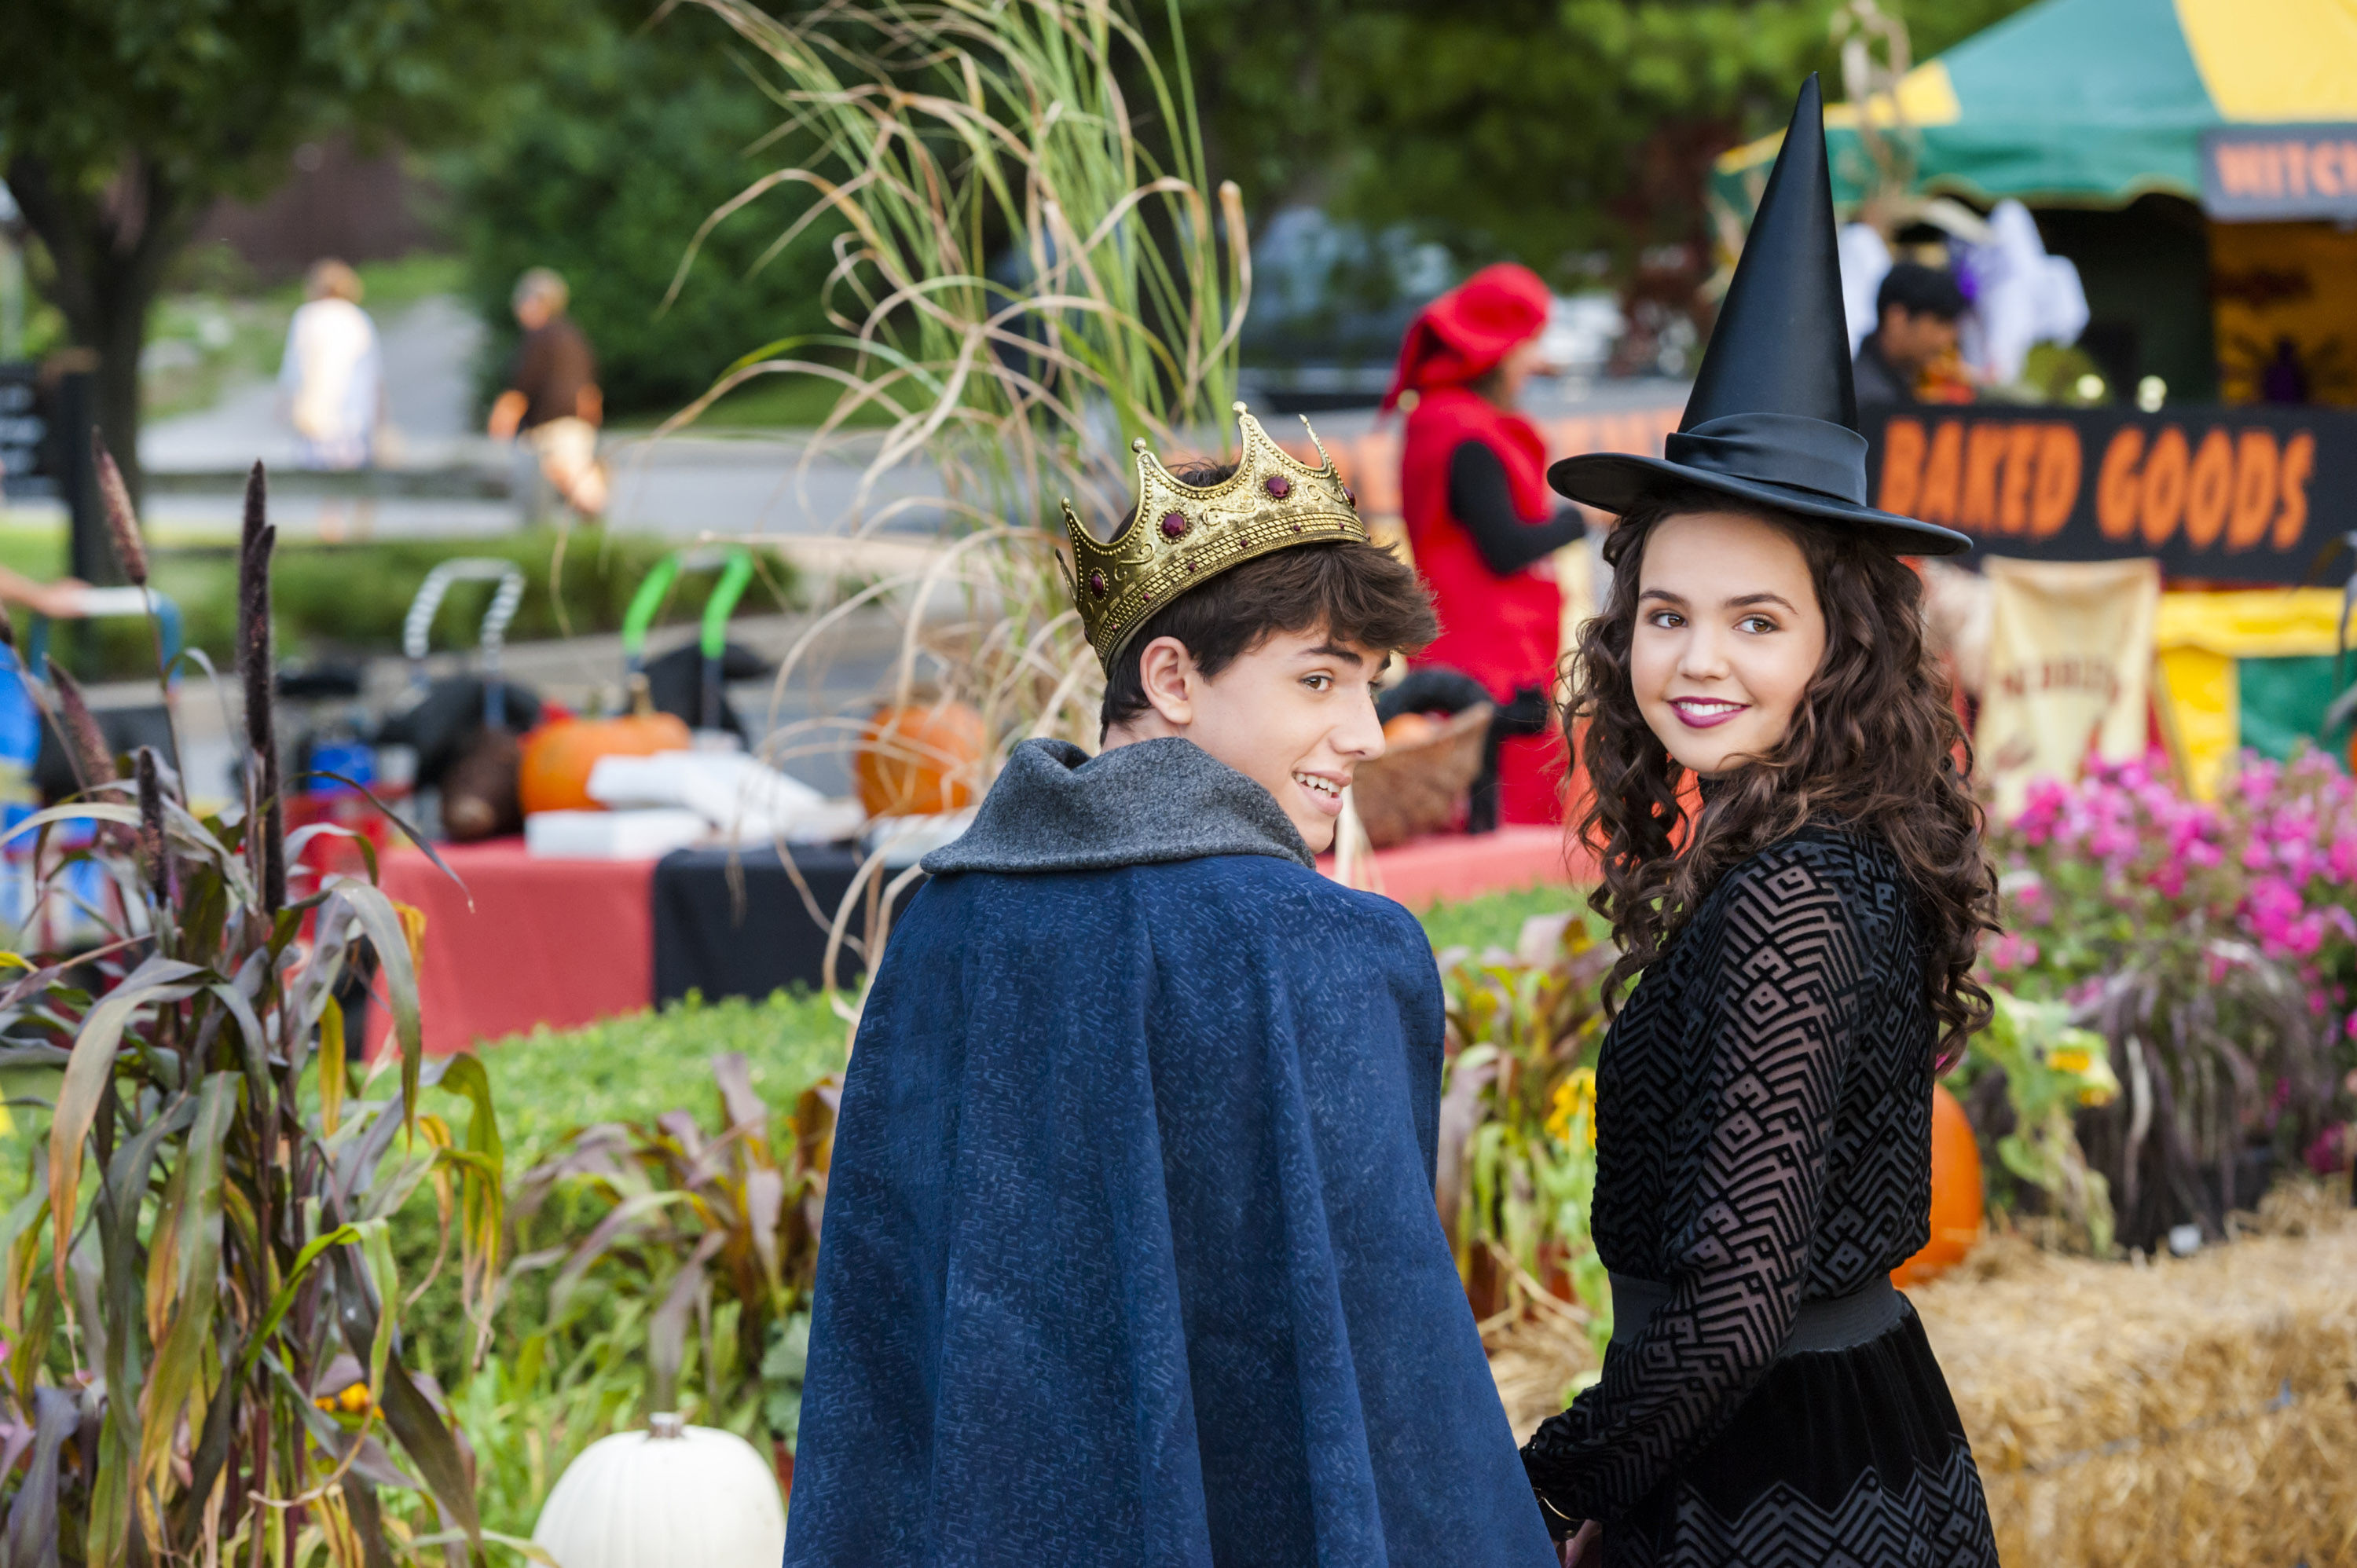 - Good Witch Halloween extra